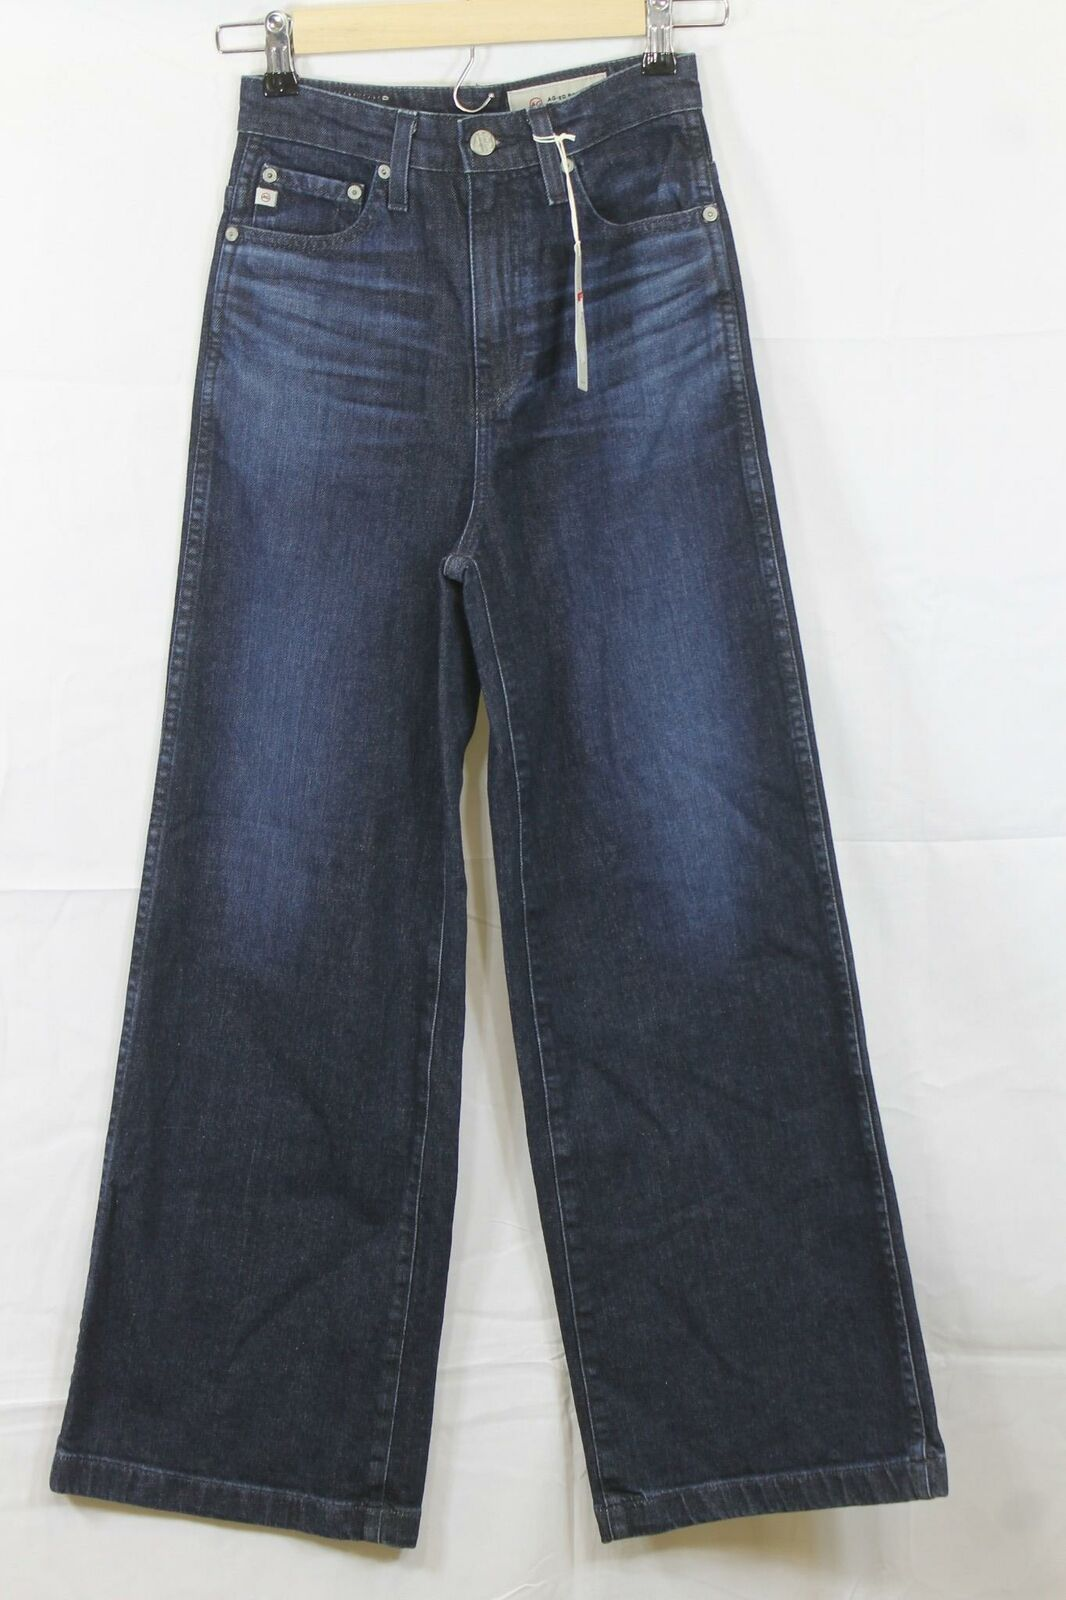 Womens Adriano goldschmied Yvette High Rise Wide Leg Jeans Size 24 NWT